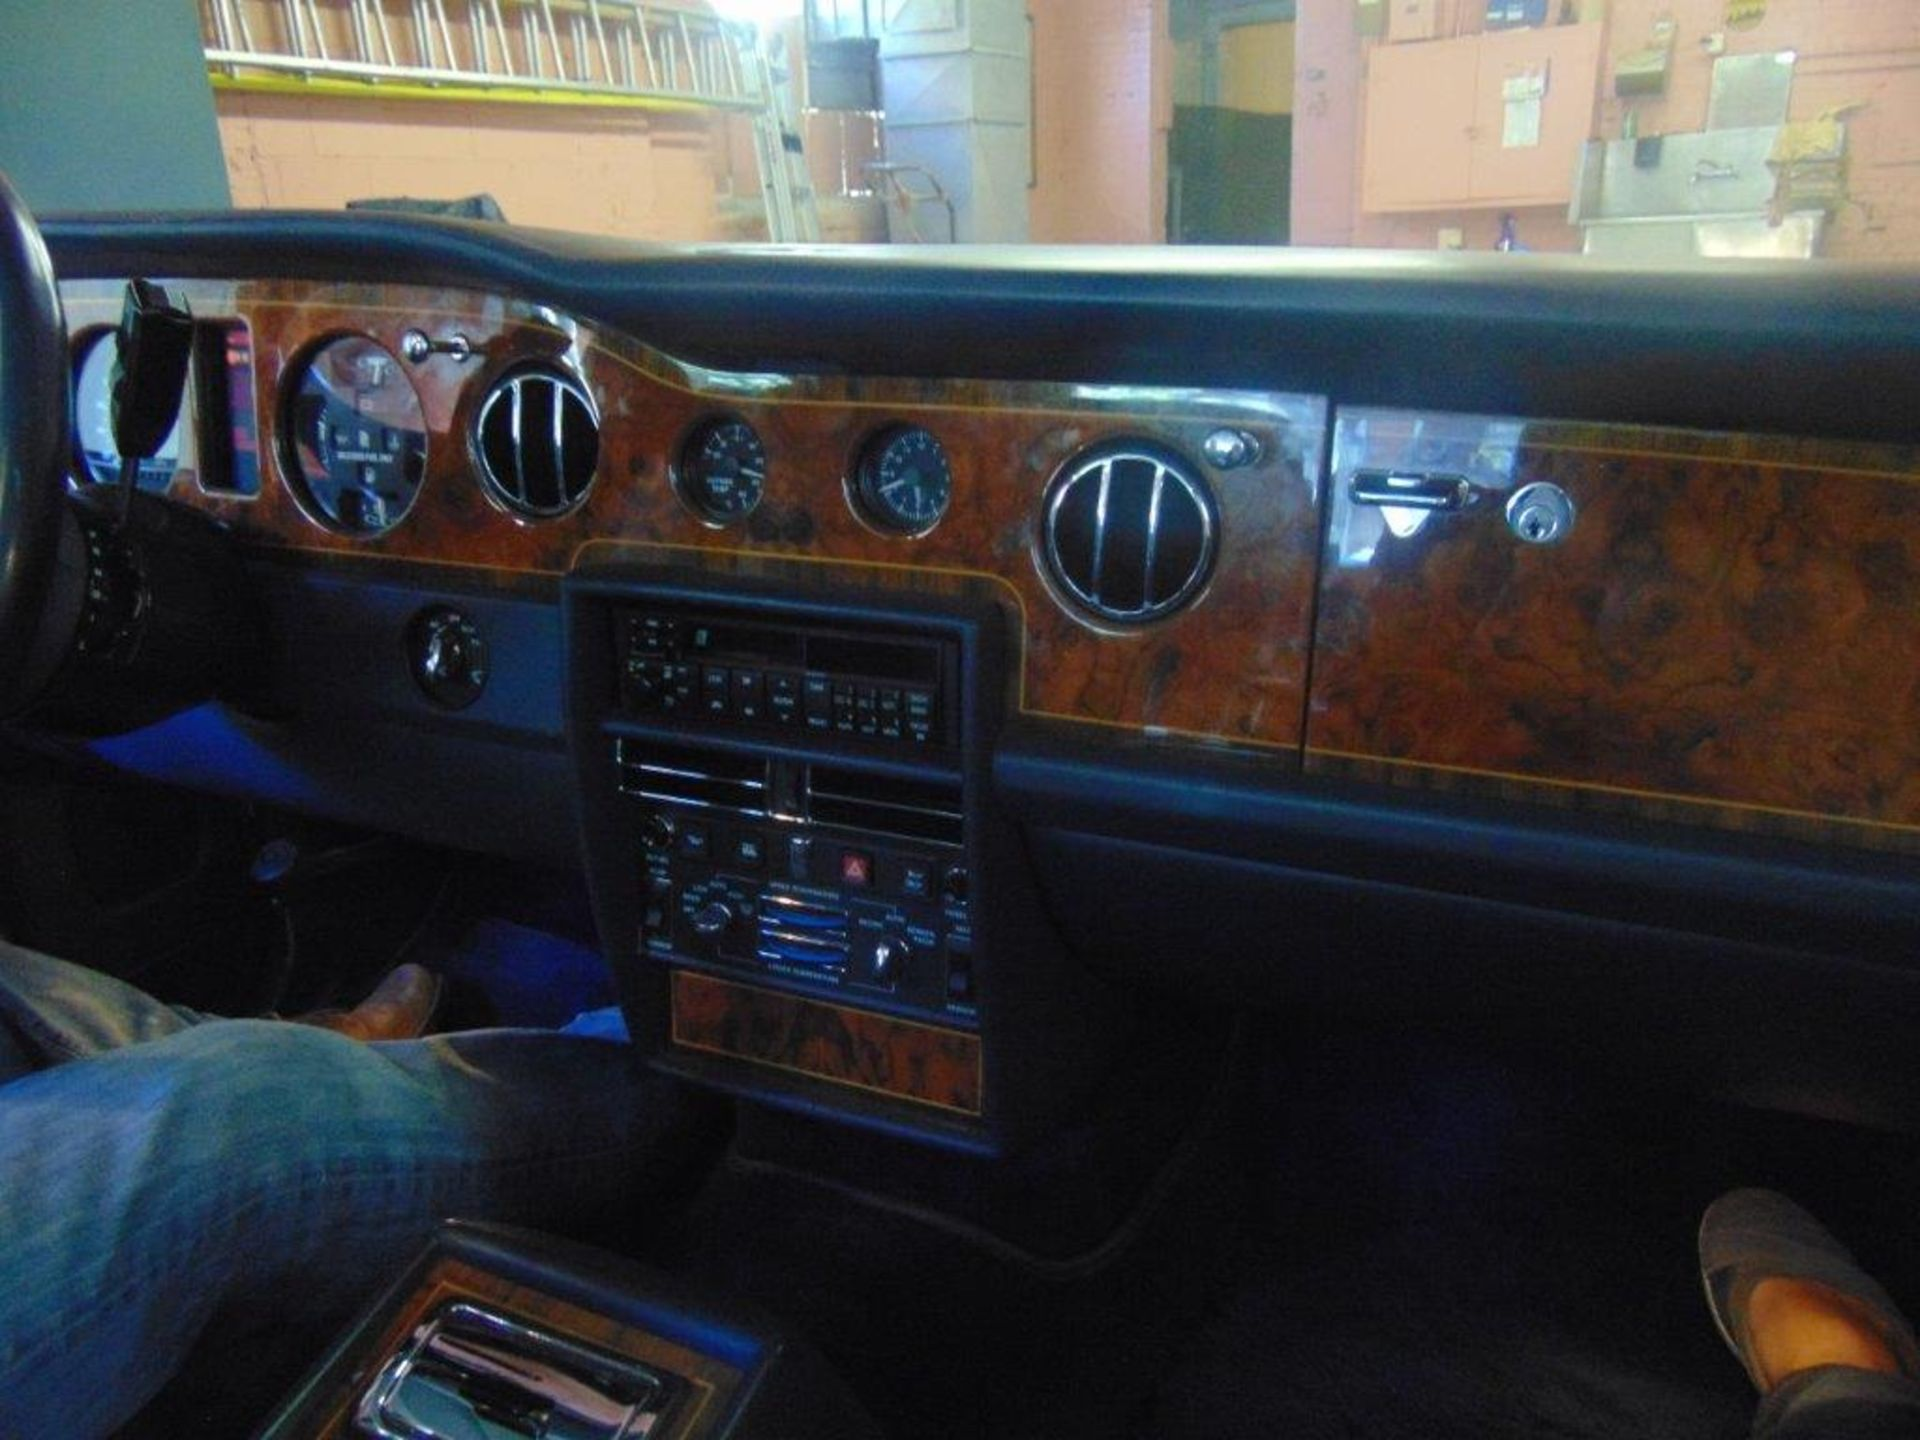 1991 ROLLS-ROYCE SILVER SPIRIT – ROYAL BLUE, 6.8 LIT. AC AND ALL SYSTEMS FULLY FUNCTIONAL, - Image 7 of 11